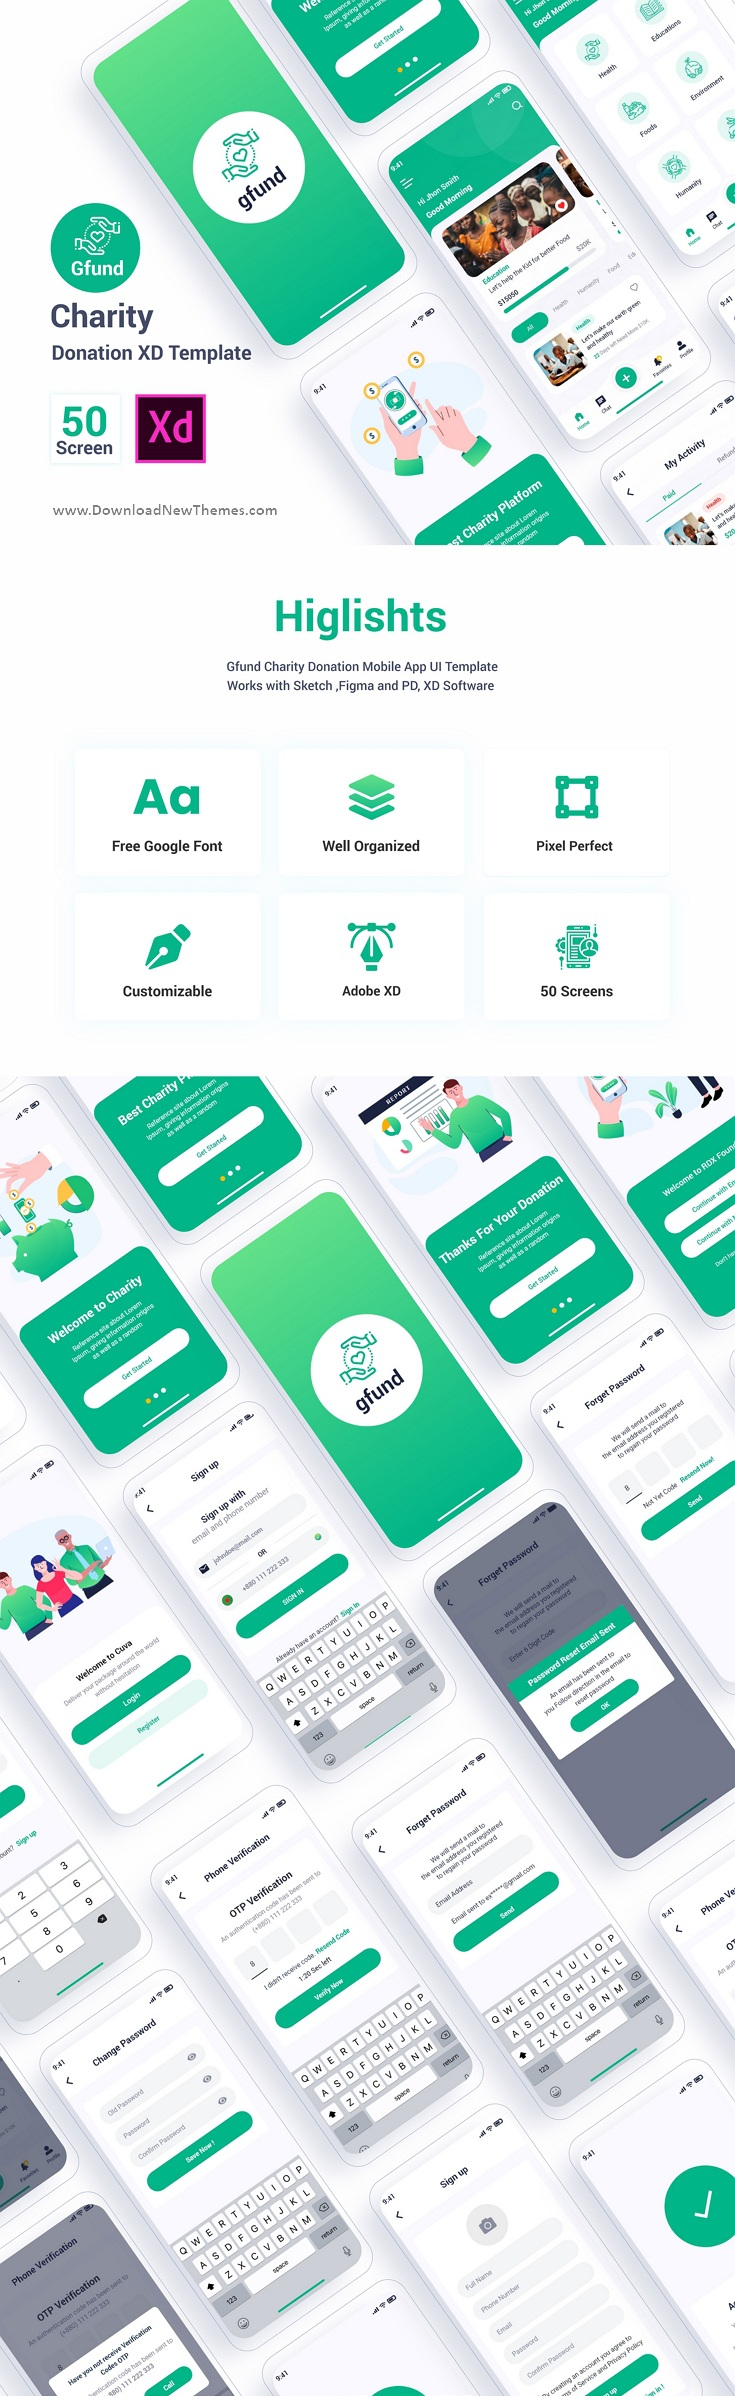 Charity Donation Adobe XD Template